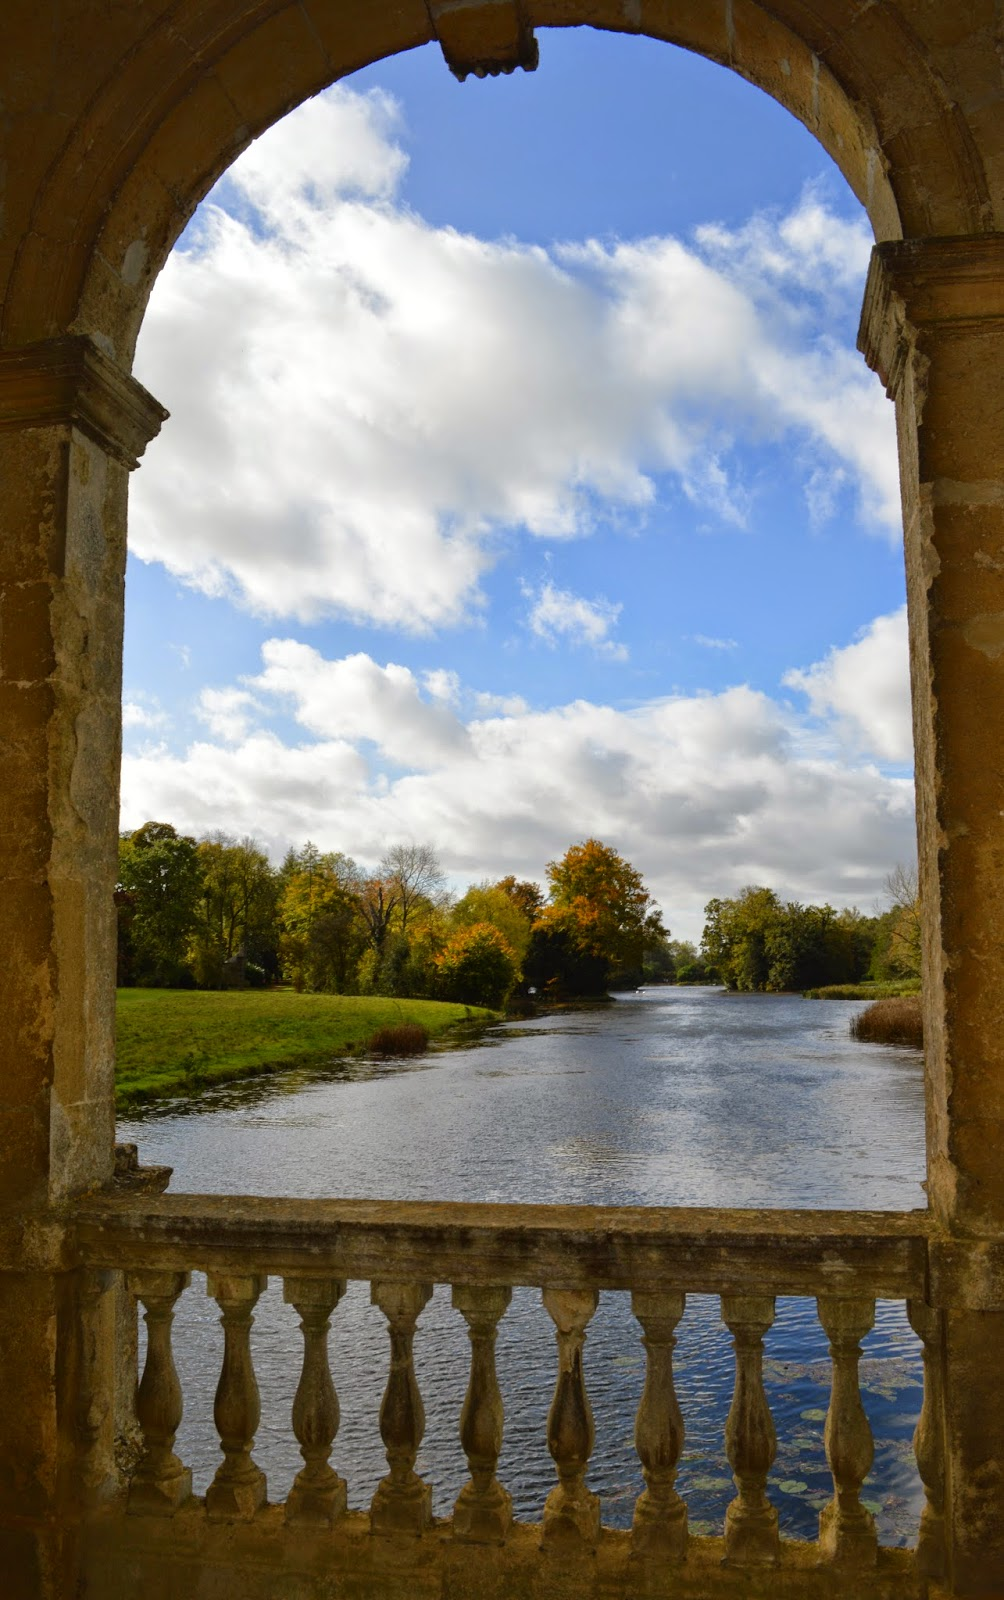 Stowe, grounds, gardens, folly, landscape, Capability Brown, architecture, follies, 18th Century, temple, Palladian, UK, English, photo, pictures, photographs, examples,